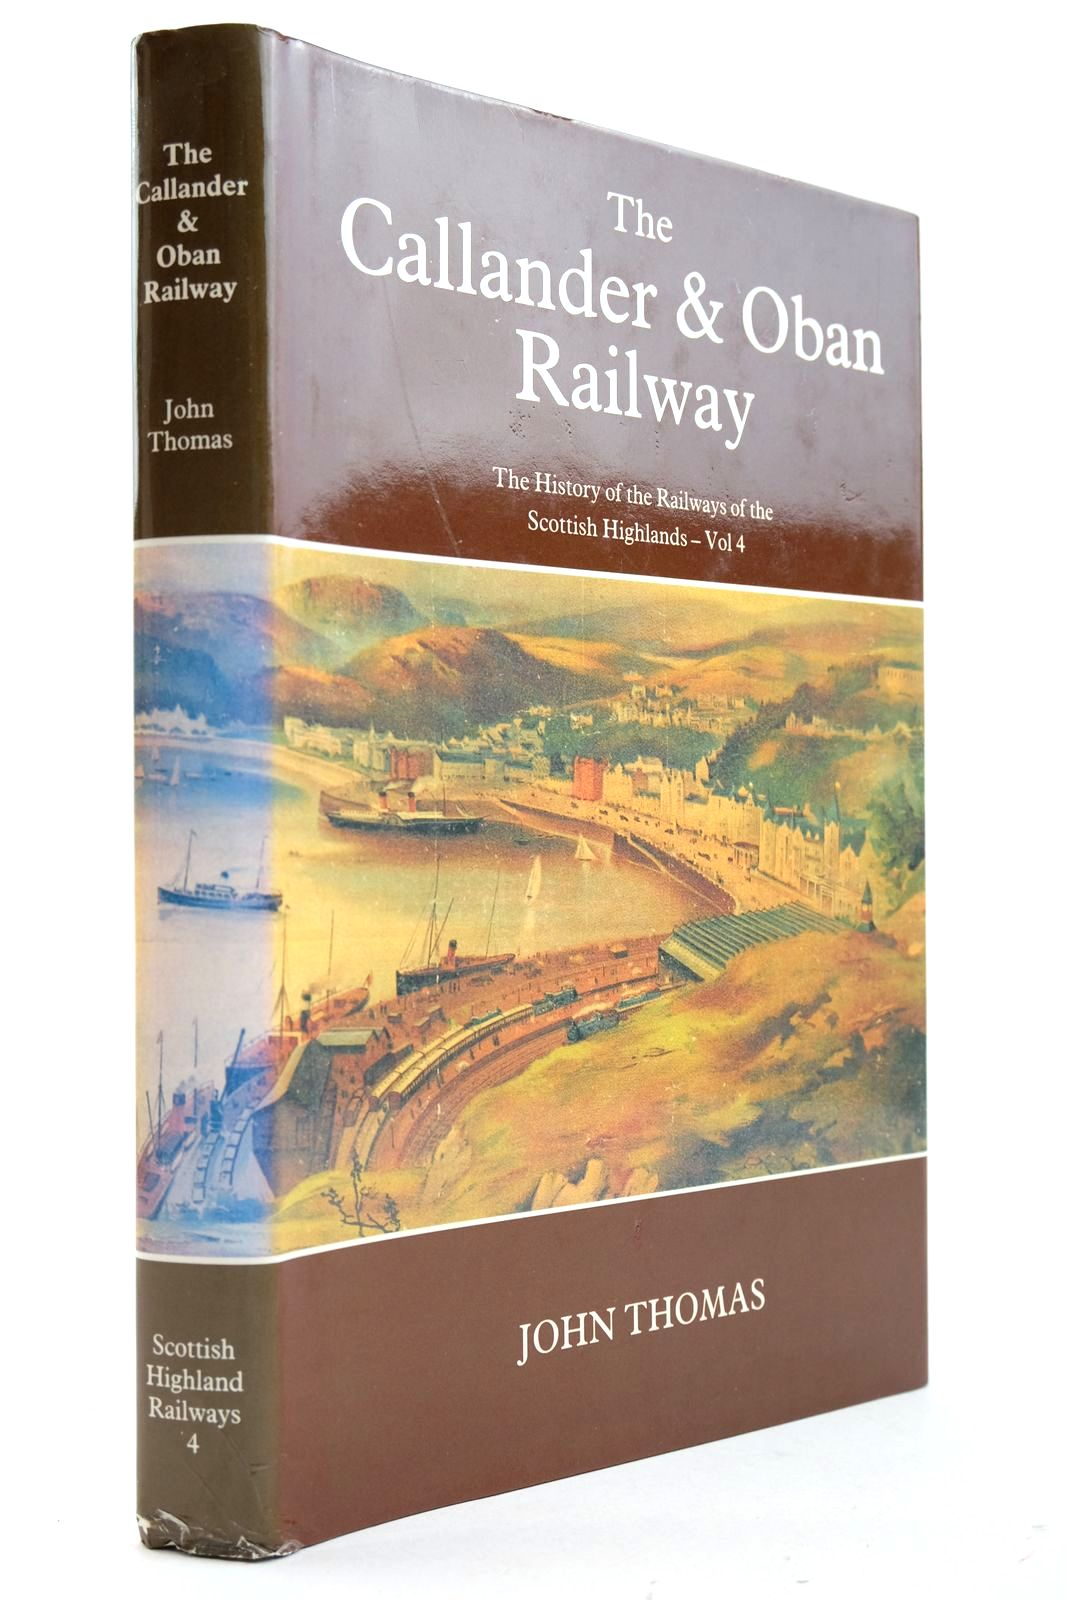 Photo of THE CALLANDER & OBAN RAILWAY- Stock Number: 2133049